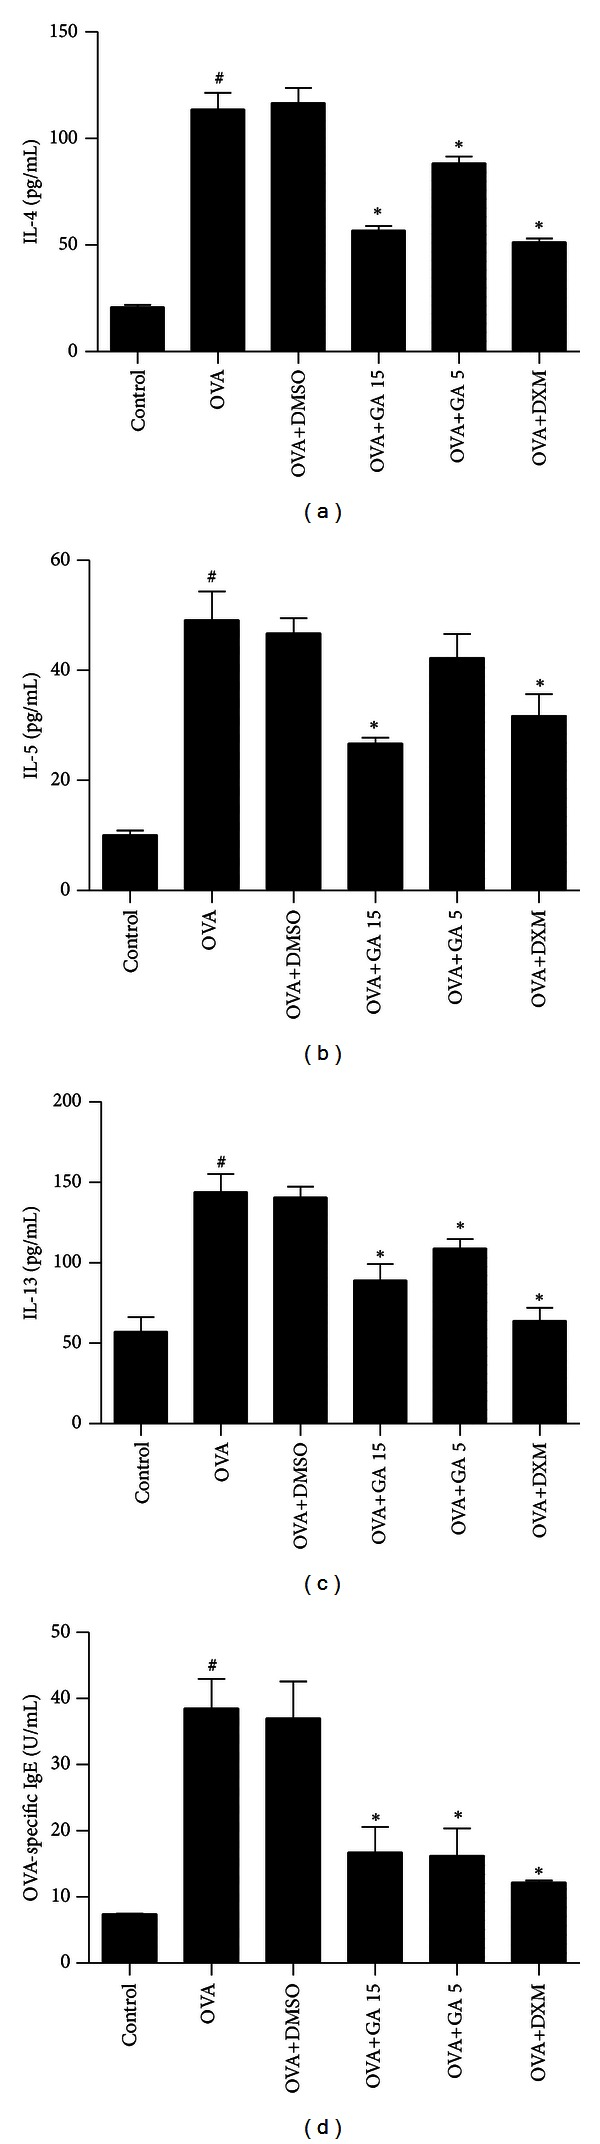 Treatment with galangin reduces levels of Th2 cytokine in BALF and OVA-specific IgE in serum in a murine model of asthma. Concentrations of IL-4 (a), IL-5 (b), IL-13 (c), and OVA-specific IgE (d) were measured by enzyme-linked immunosorbent assay. Data are expressed as means ± SEM ( n = 6 per group). # P